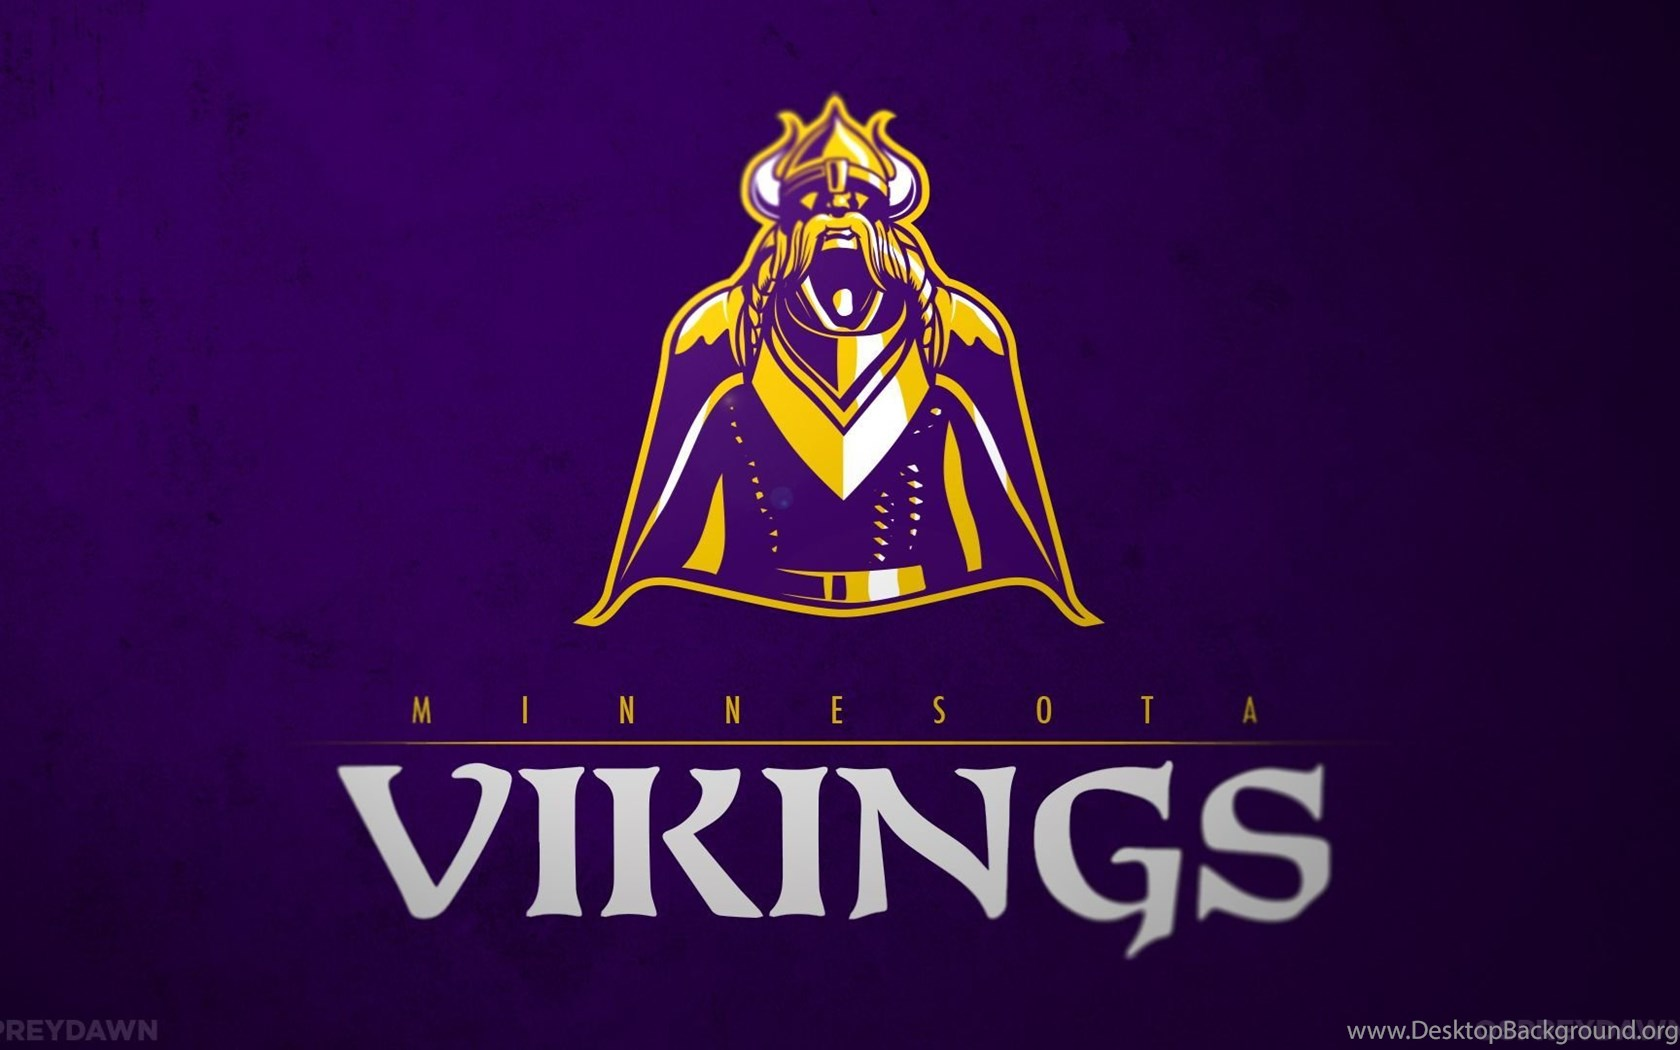 Hd Super Minnesota Vikings Wallpapers Jpg Desktop Background